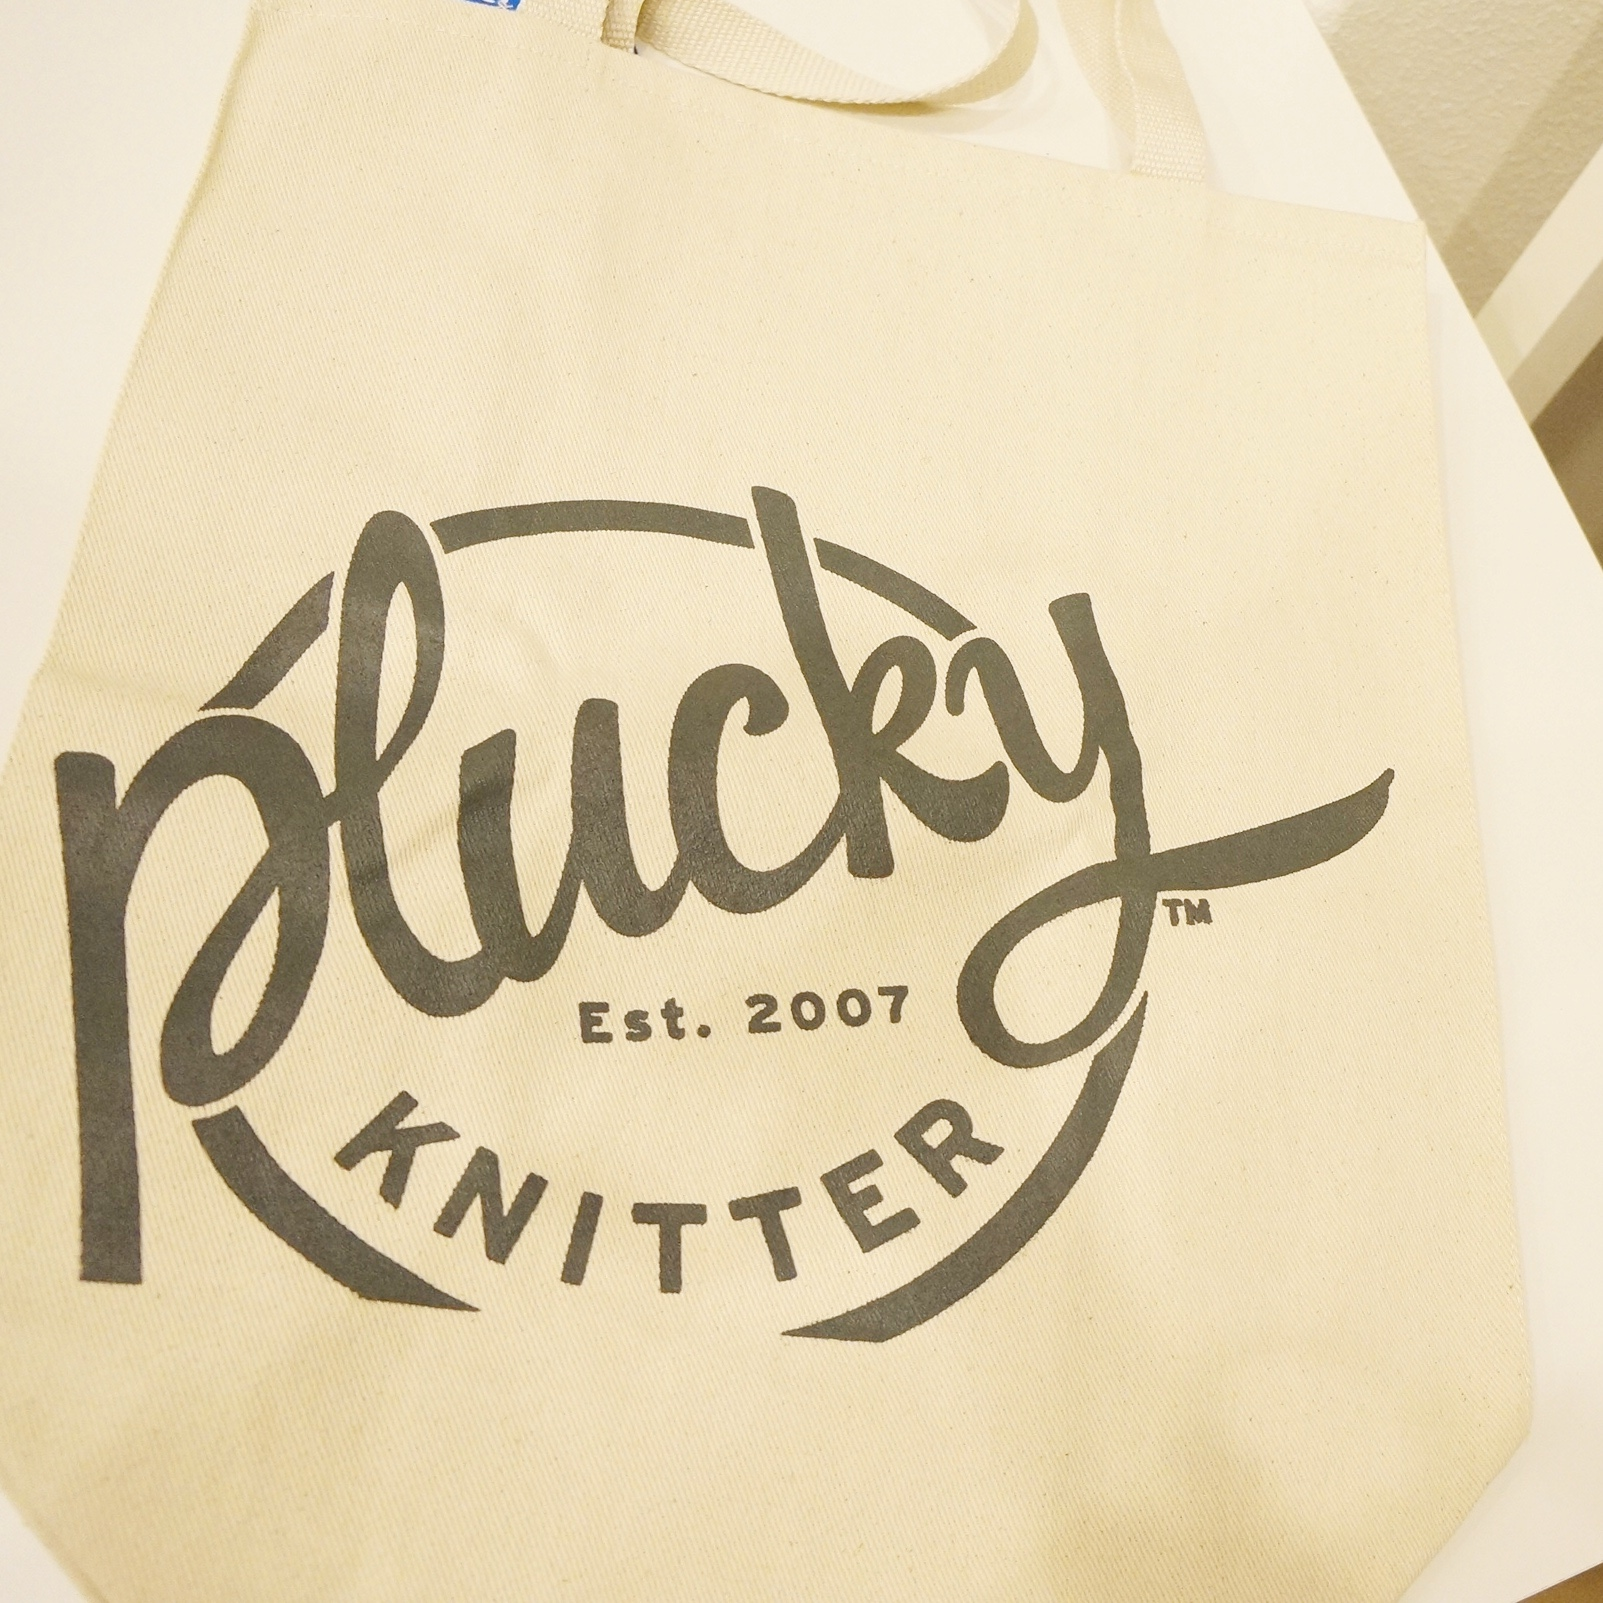 New tote bag from the Plucky Knitter!